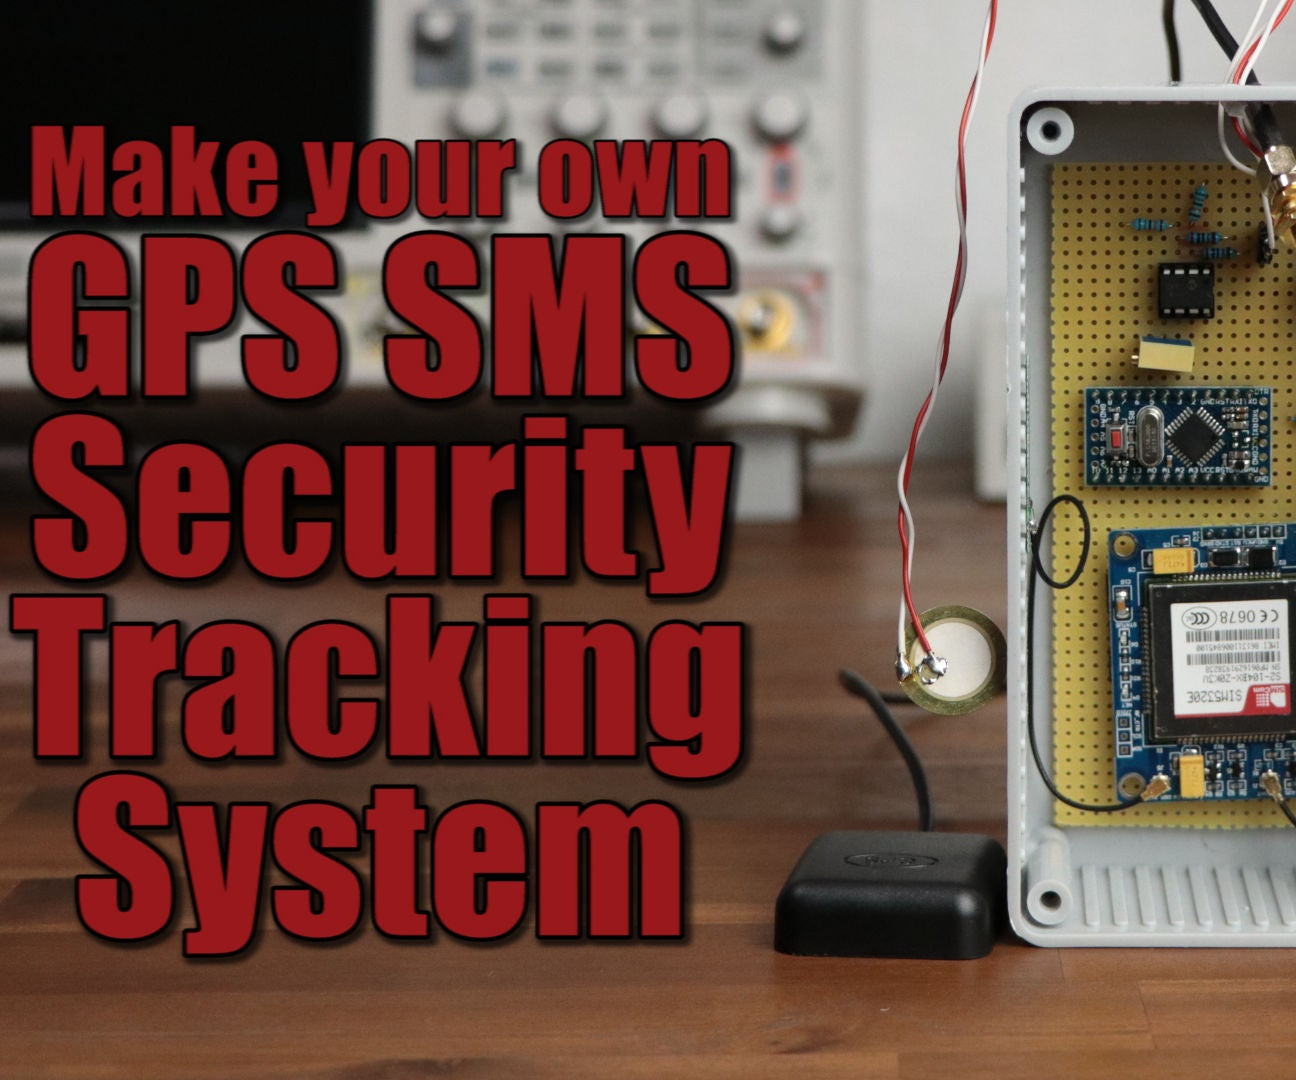 Make Your Own Gps Sms Security Tracking System 5 Steps With Pictures Download Image Led Strobe Circuit Needs More Current Pc Android